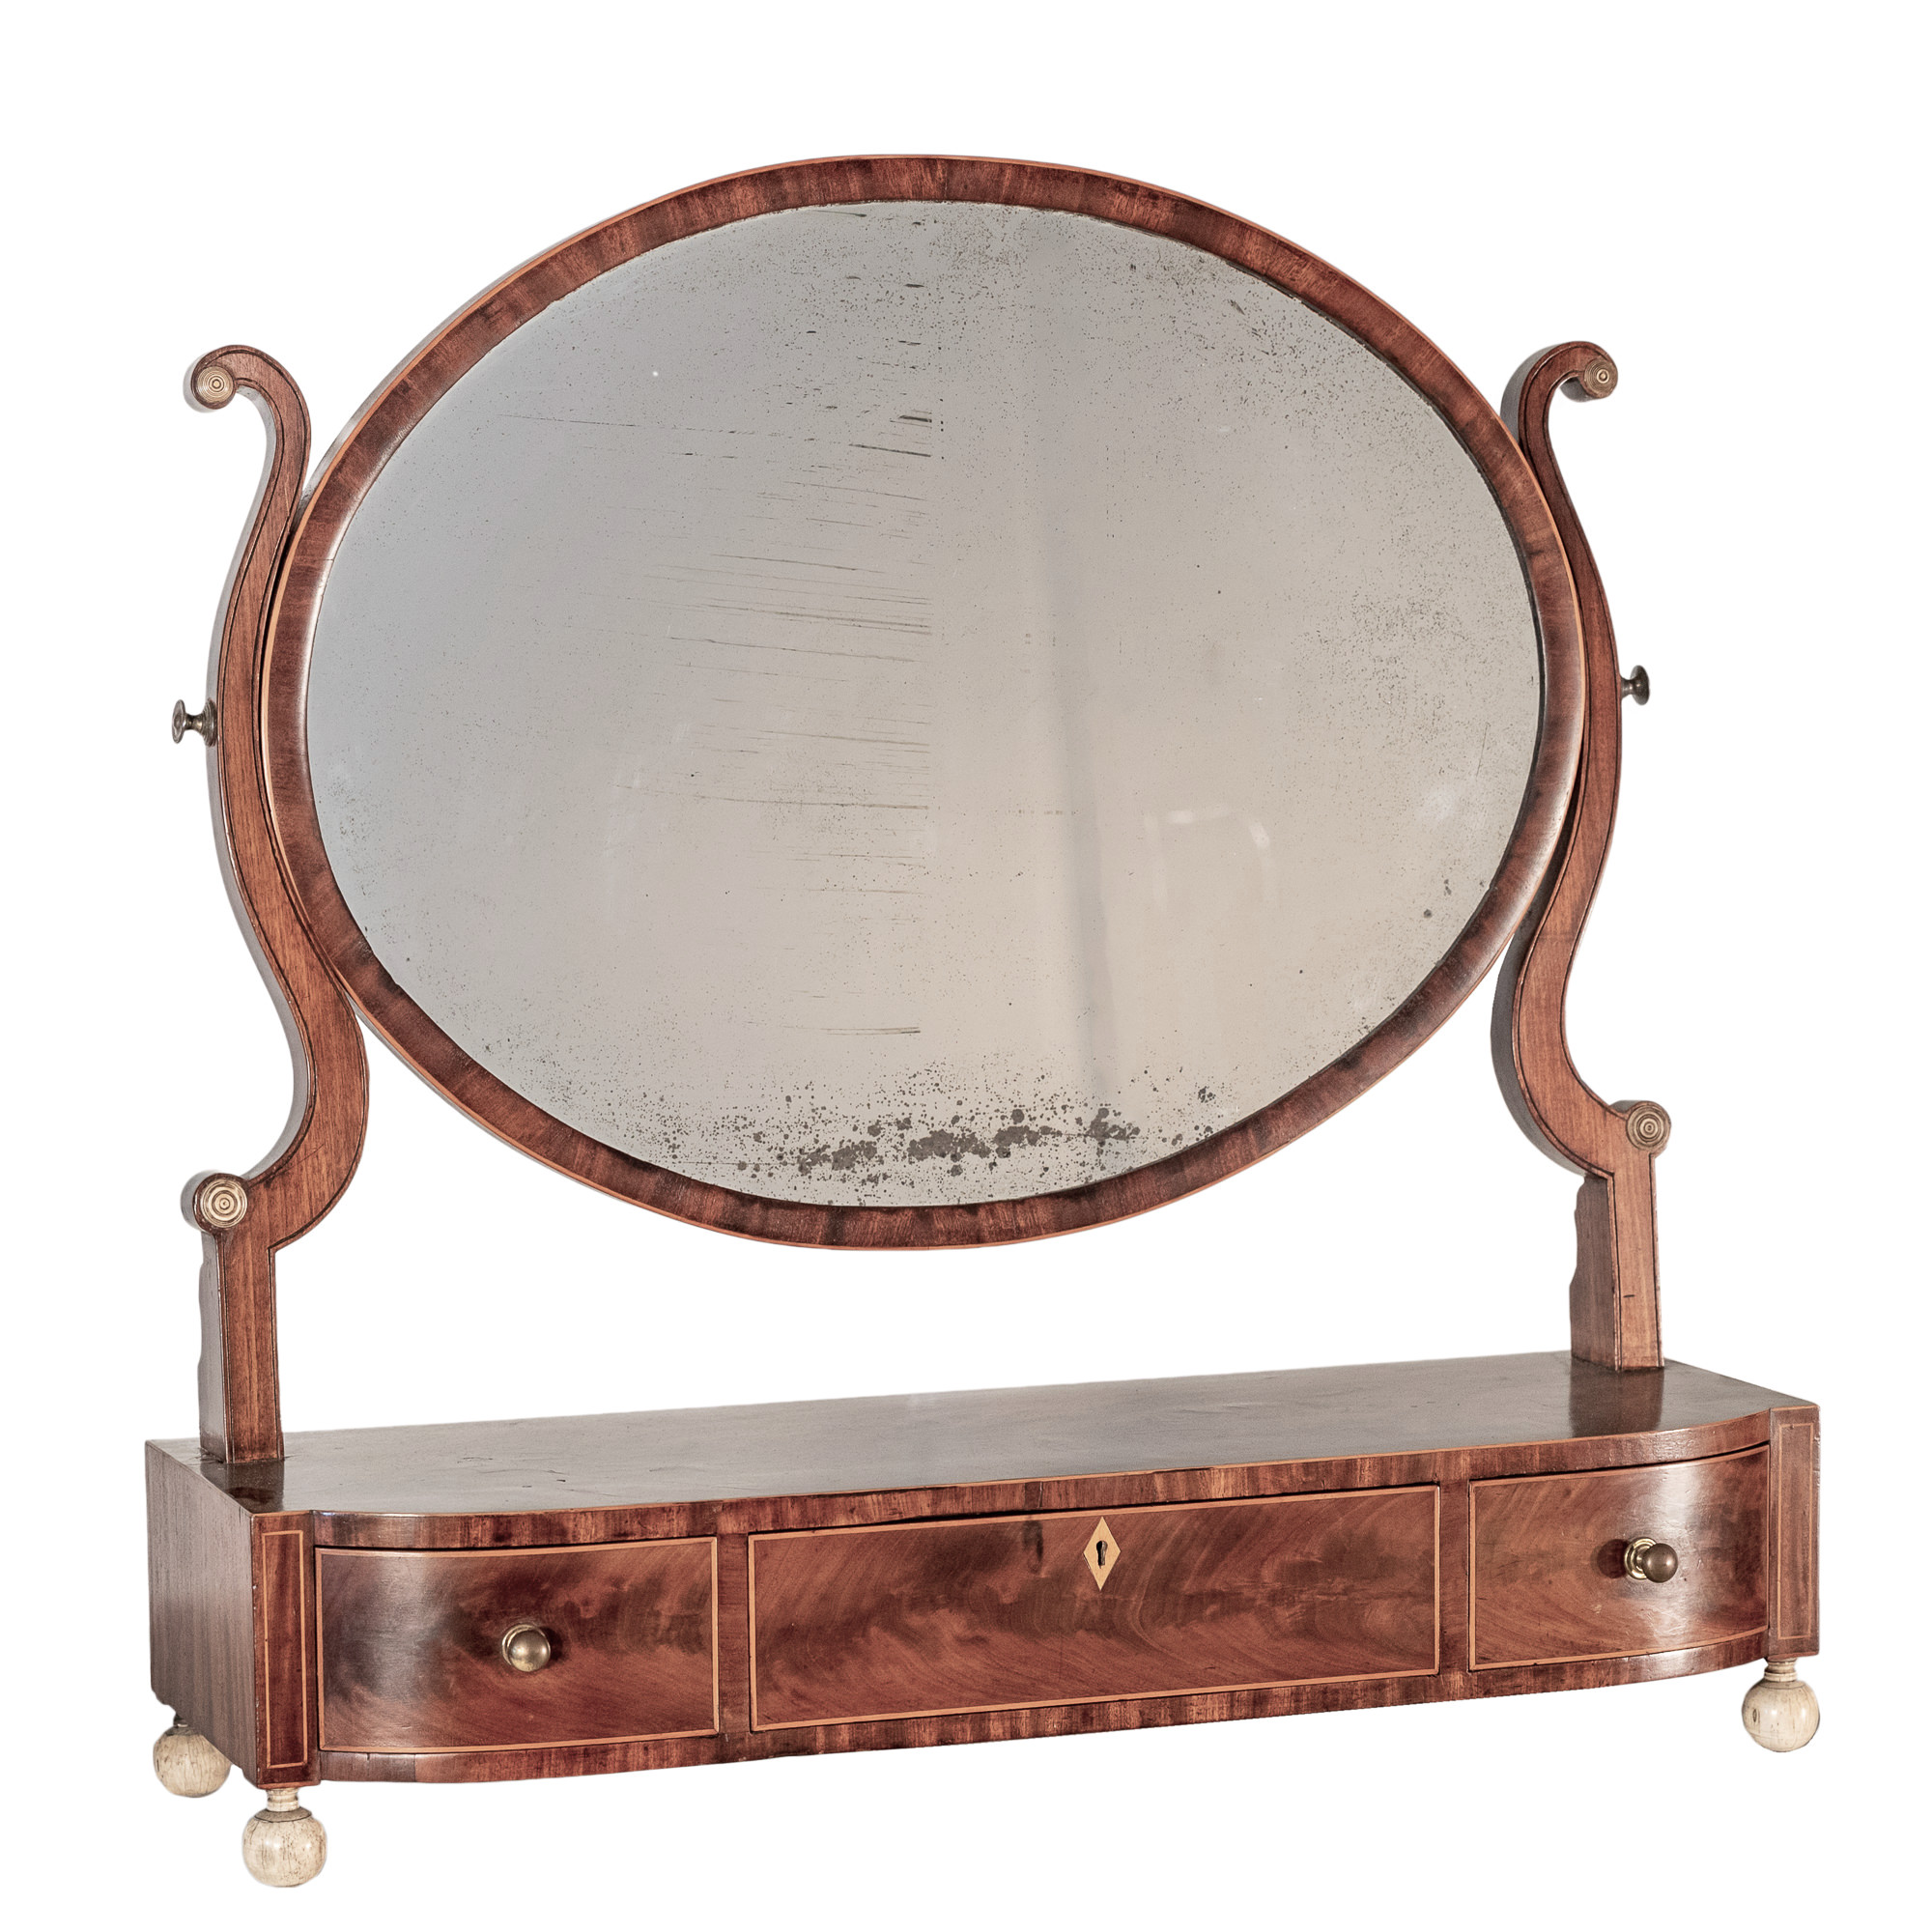 'George III Mahogany and Boxwood Strung and Ivory Embellished Toilet Mirror with Three Drawers Circa 1800'